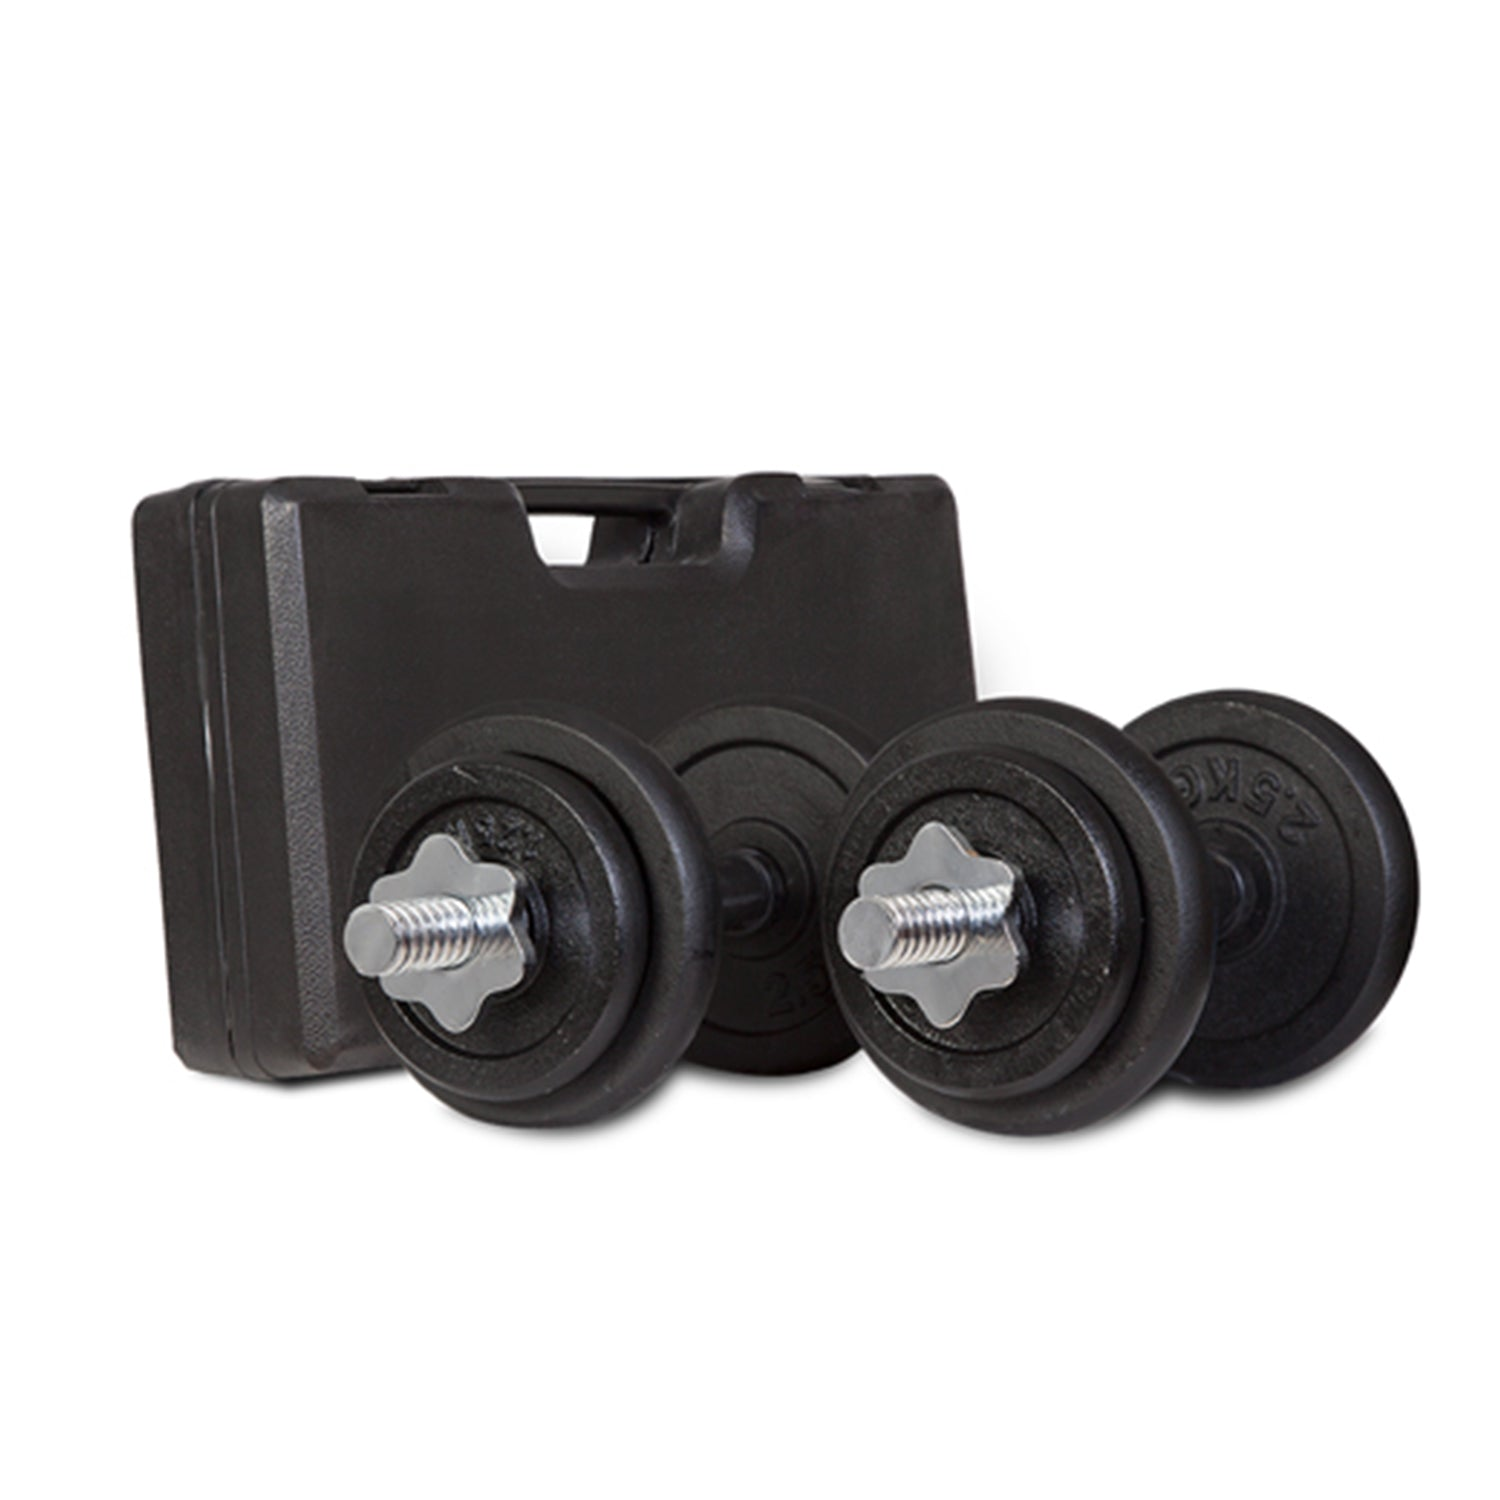 20KG Dumbbell Set in case